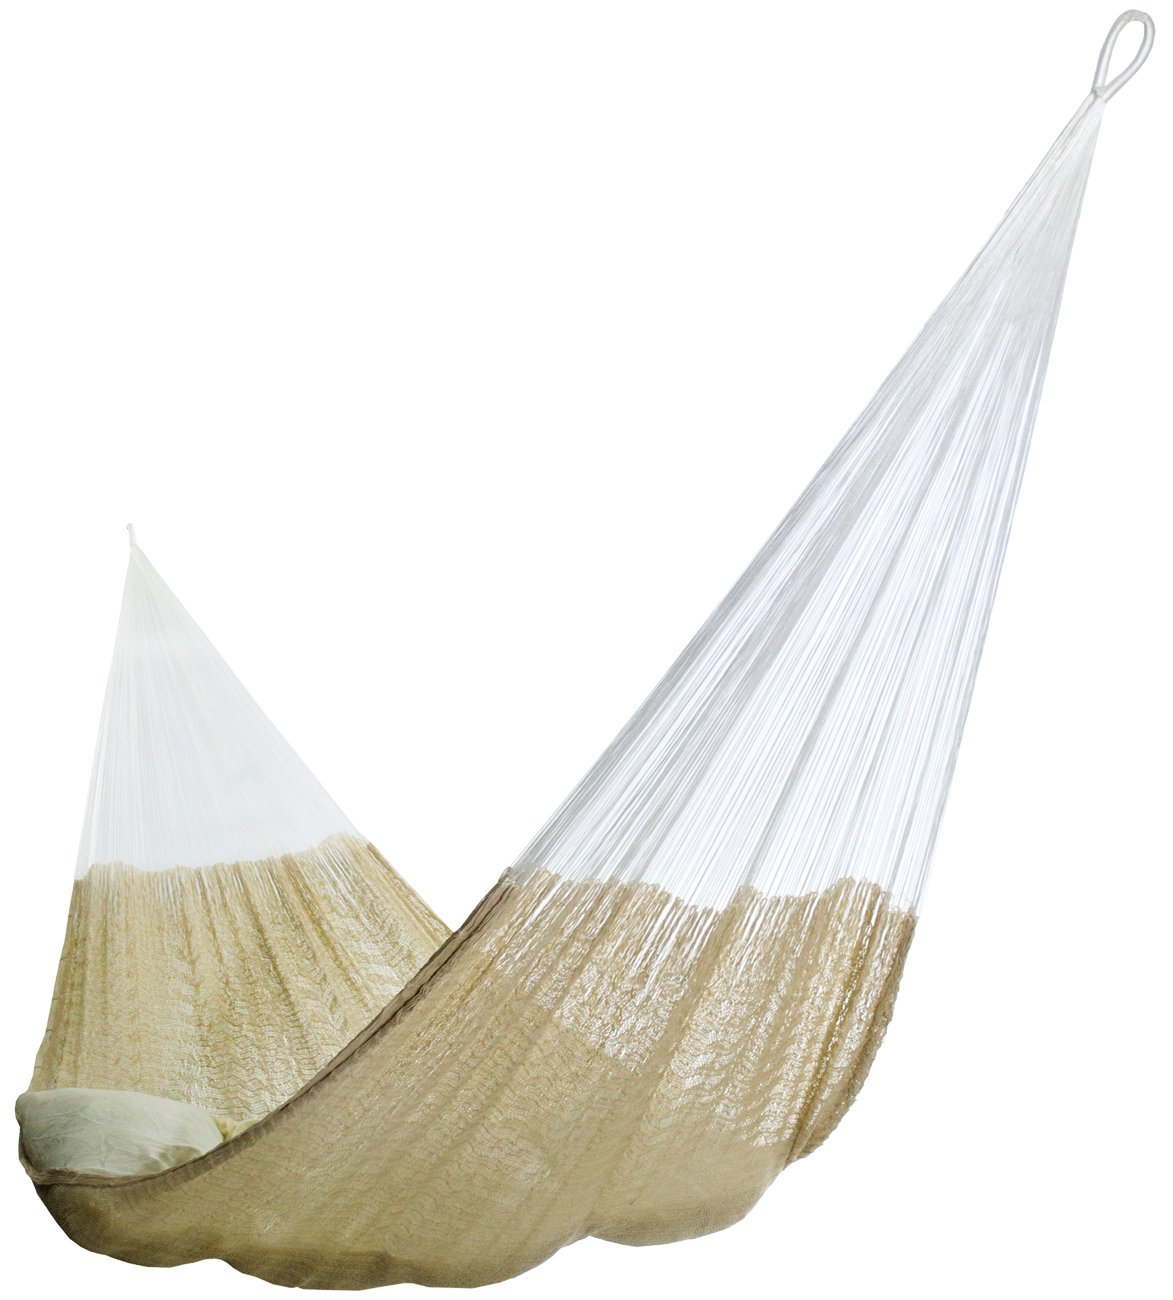 HAMMOCKS RADA- Handmade Yucatan Hammock – Matrimonial Size Natural Color – 13ft Long Artisan Crafted